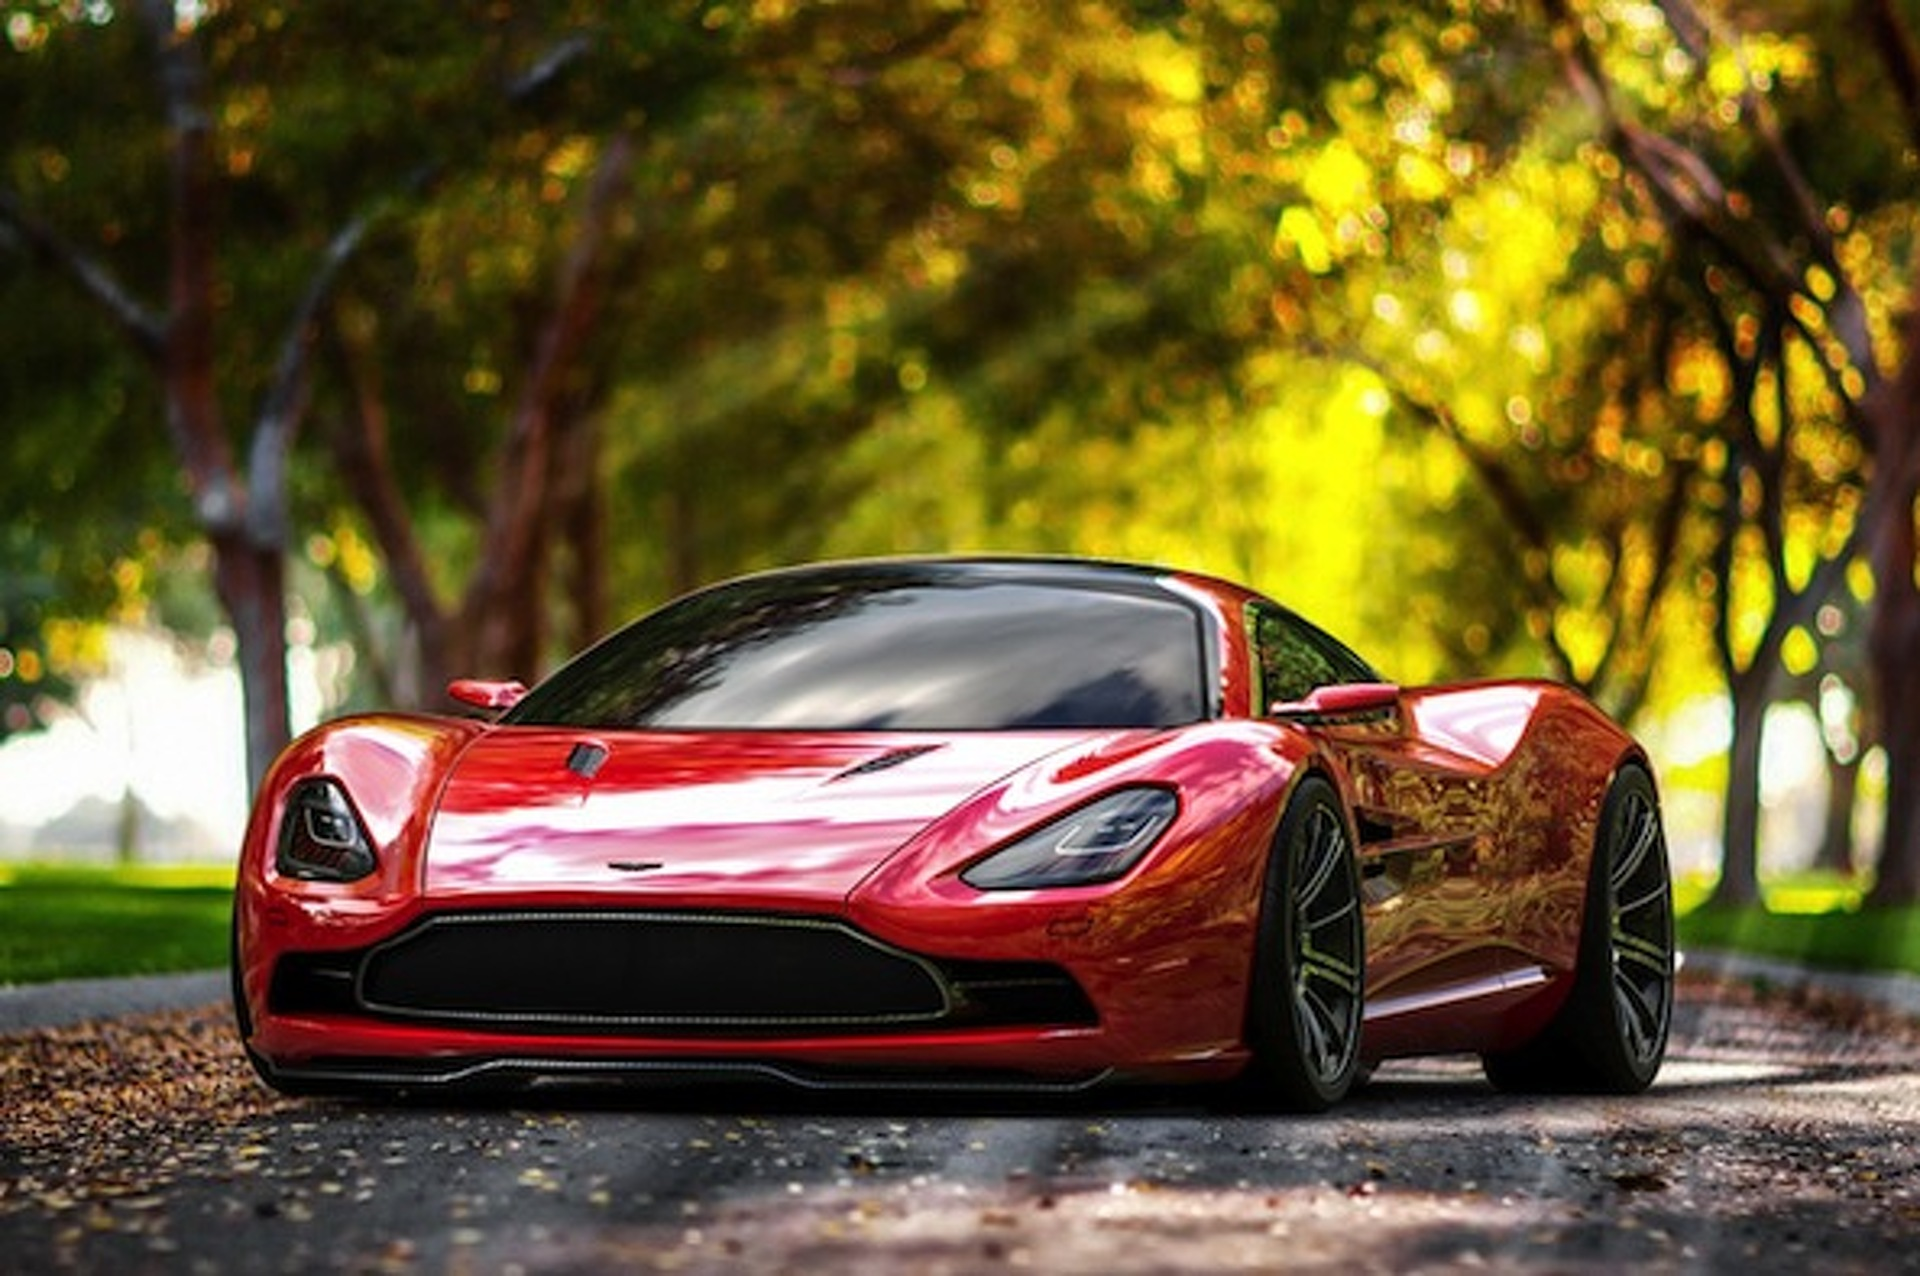 Aston Martin DBC Concept: The British Supercar We've Been Longing For